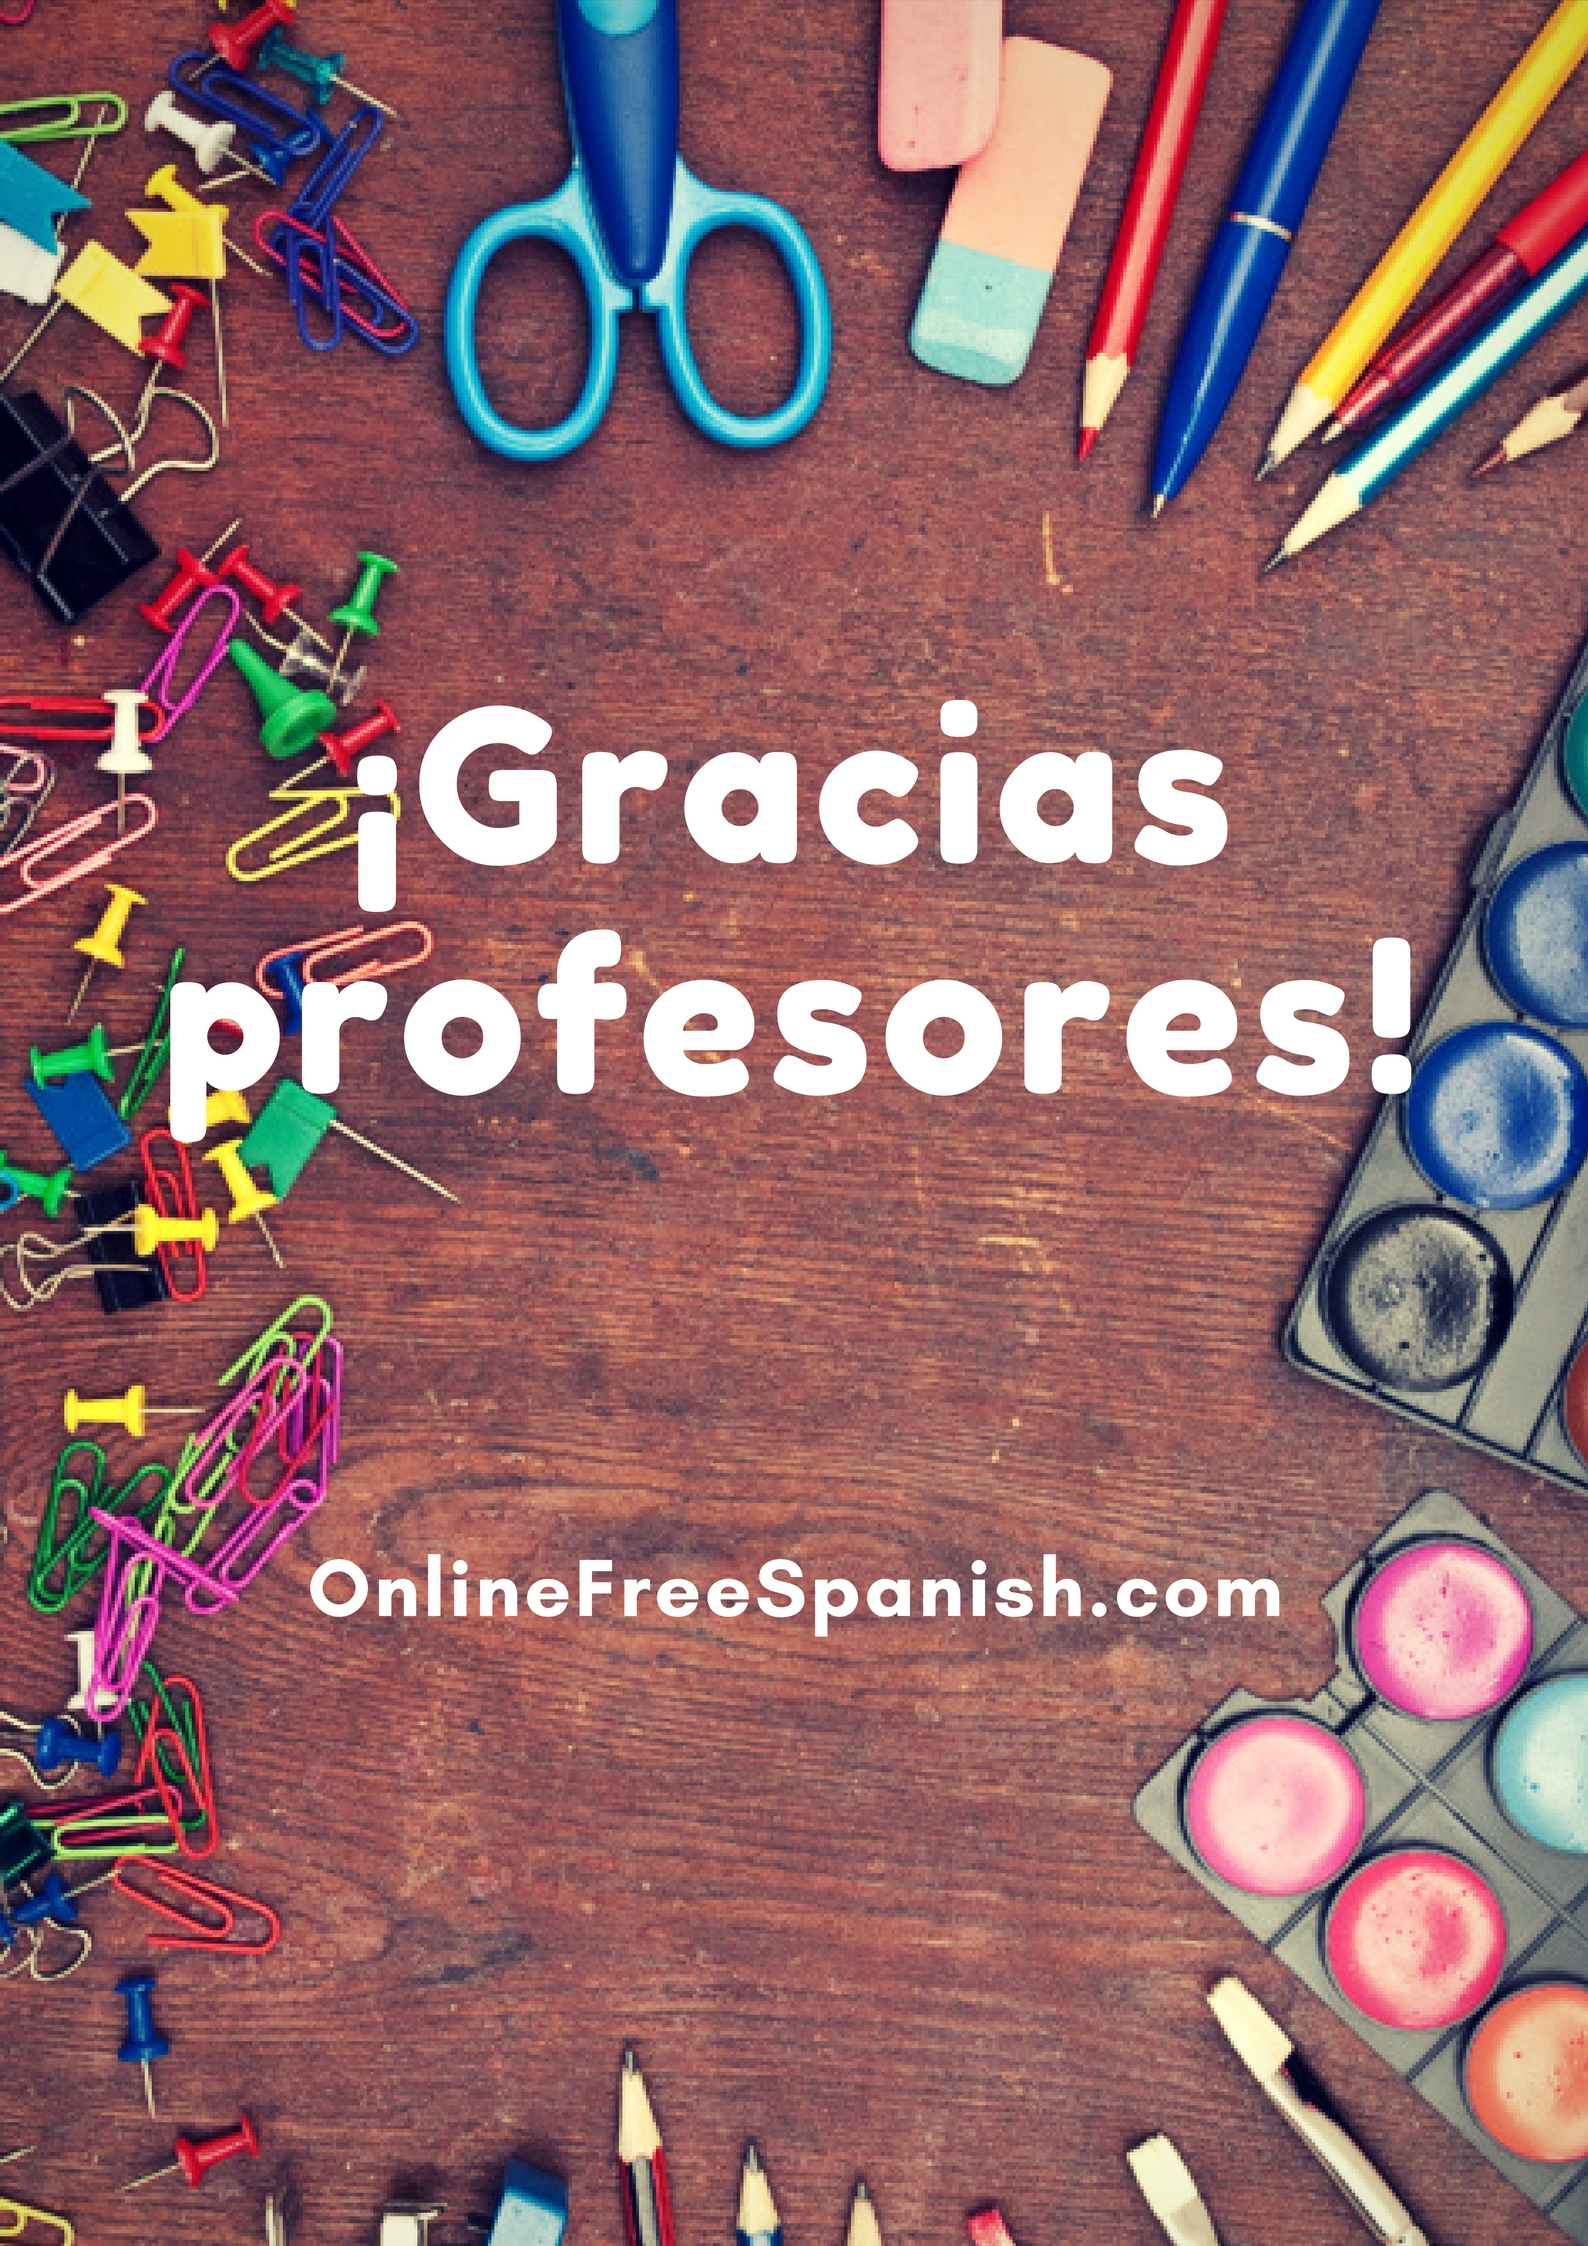 Thank you teachers! ¡Gracias profesores!